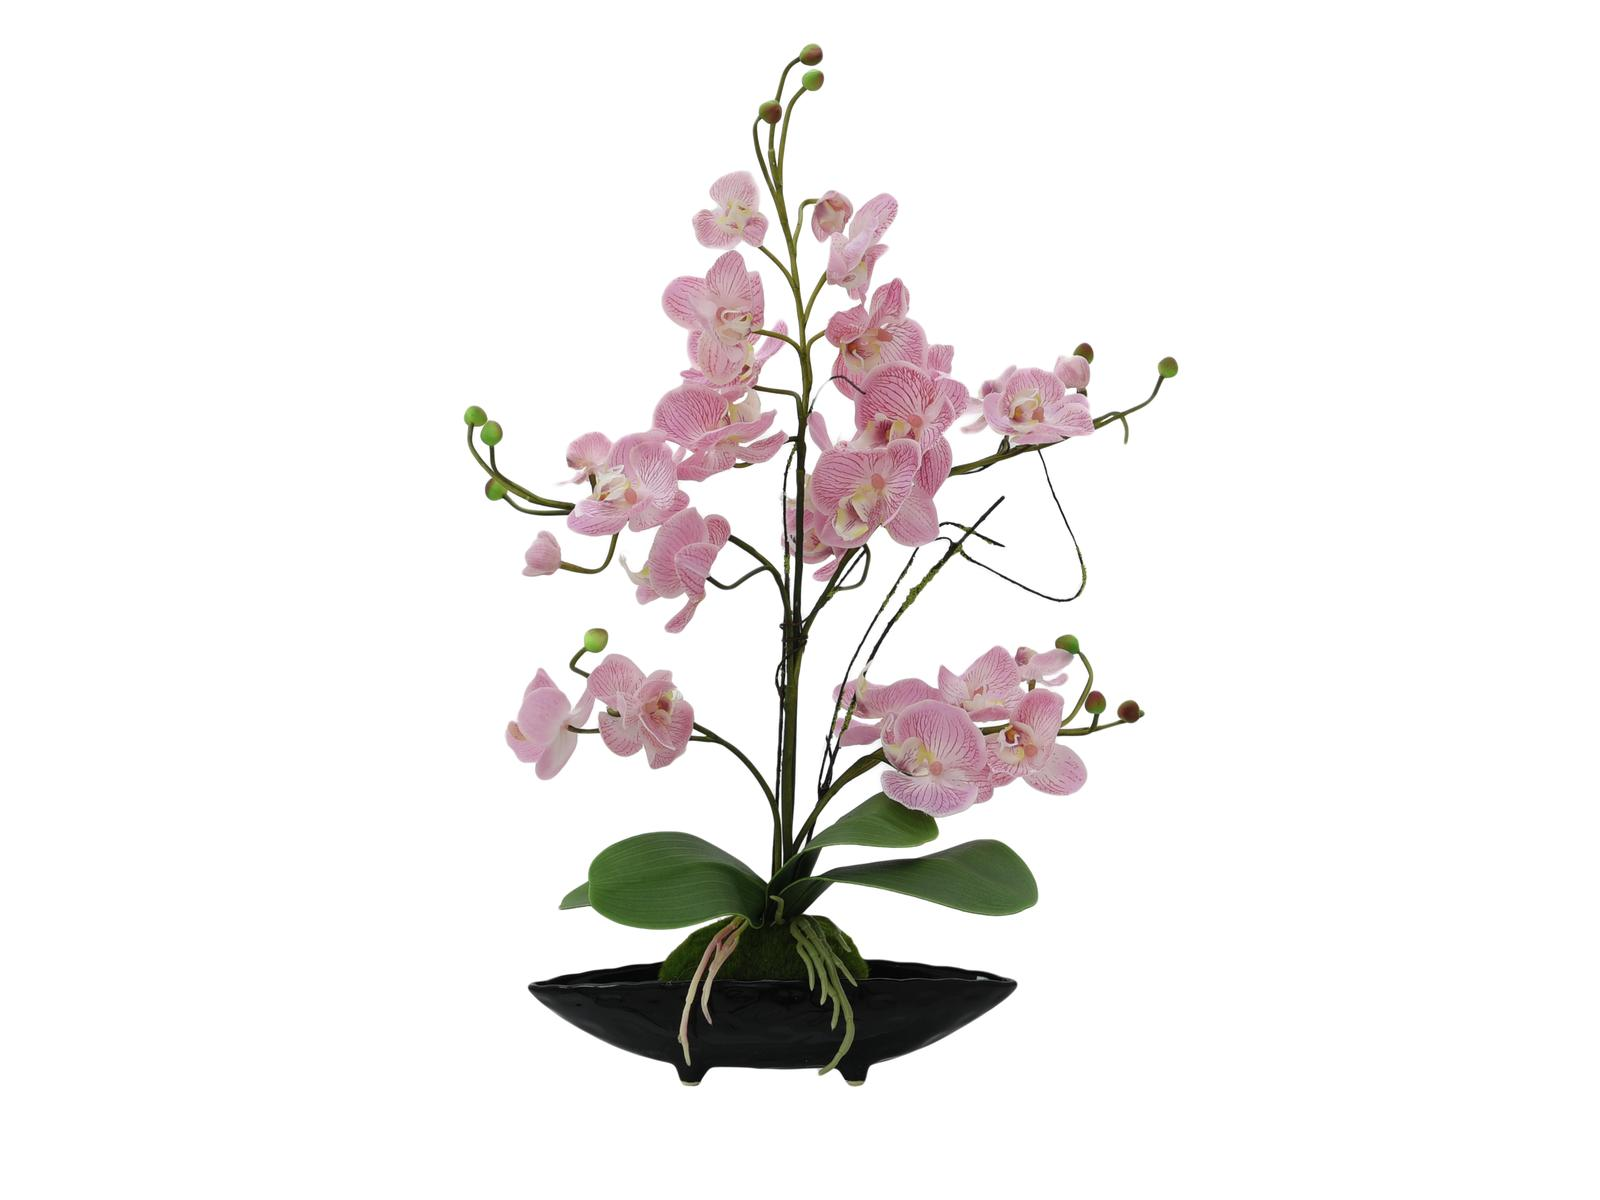 Pianta artificiale con vaso Orchidea Viola Europalms